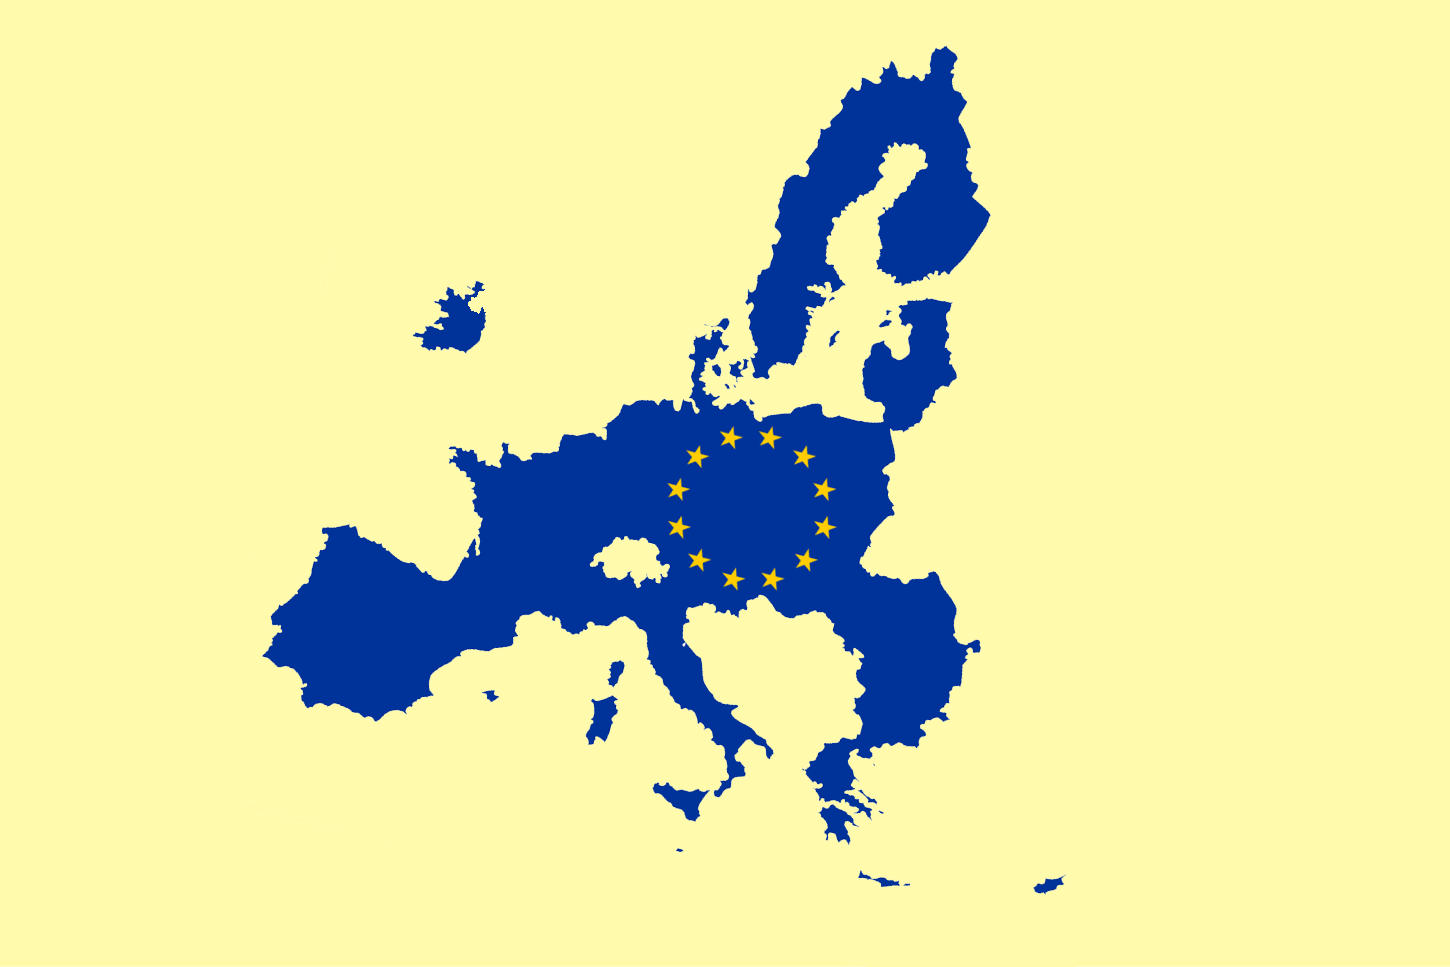 Blue and yellow map of EU